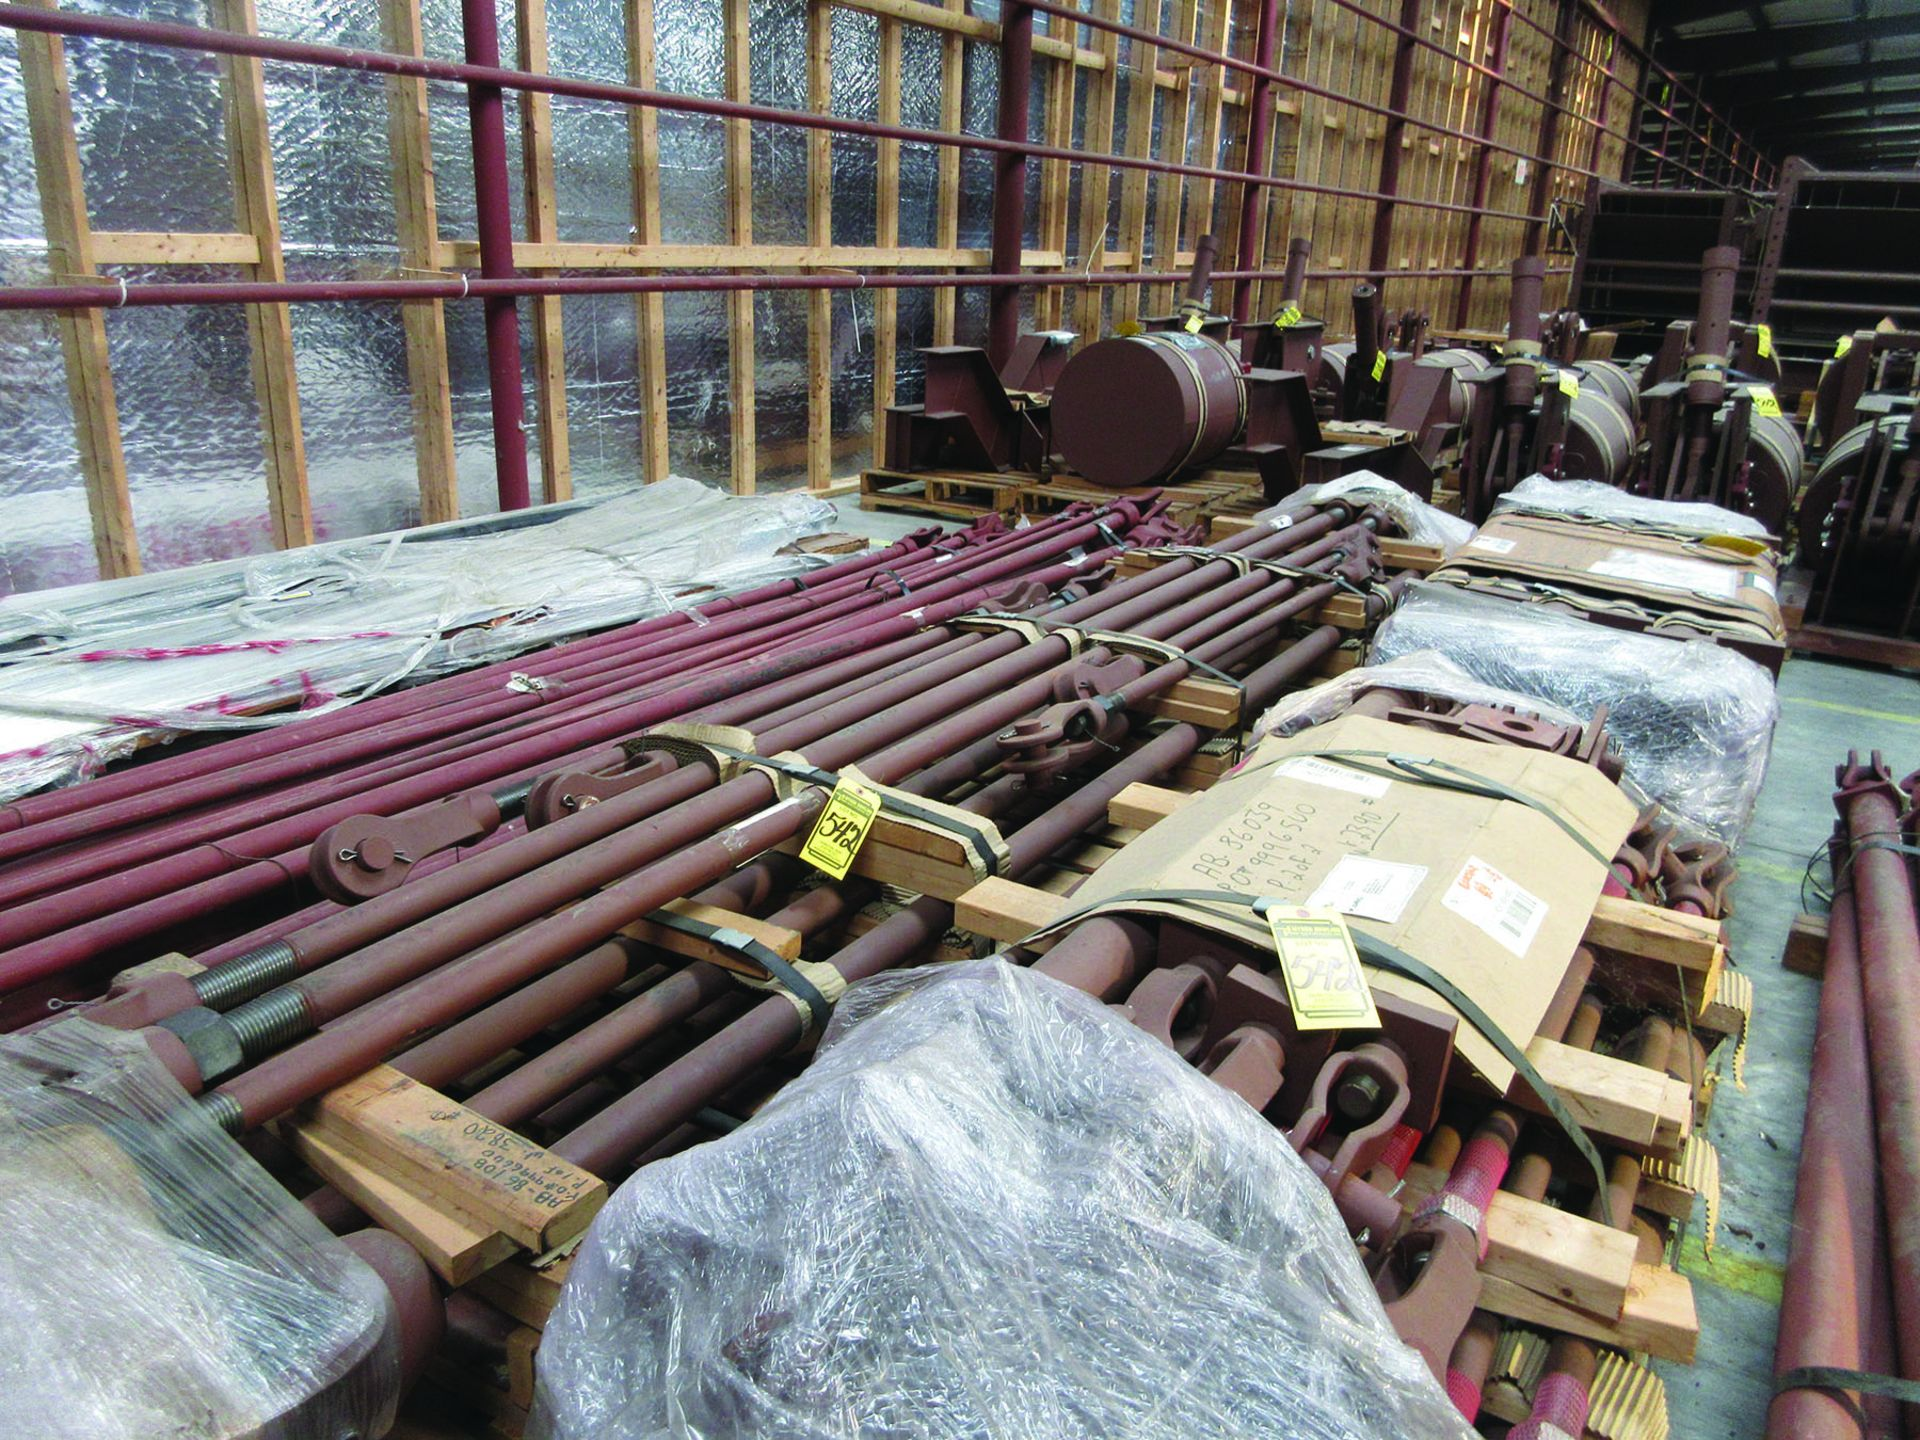 ASSORTED SPRING CANS, SUPPORT RODS, SPRING CANS 2,100-2,800 LB., GRID H8 - Image 7 of 11